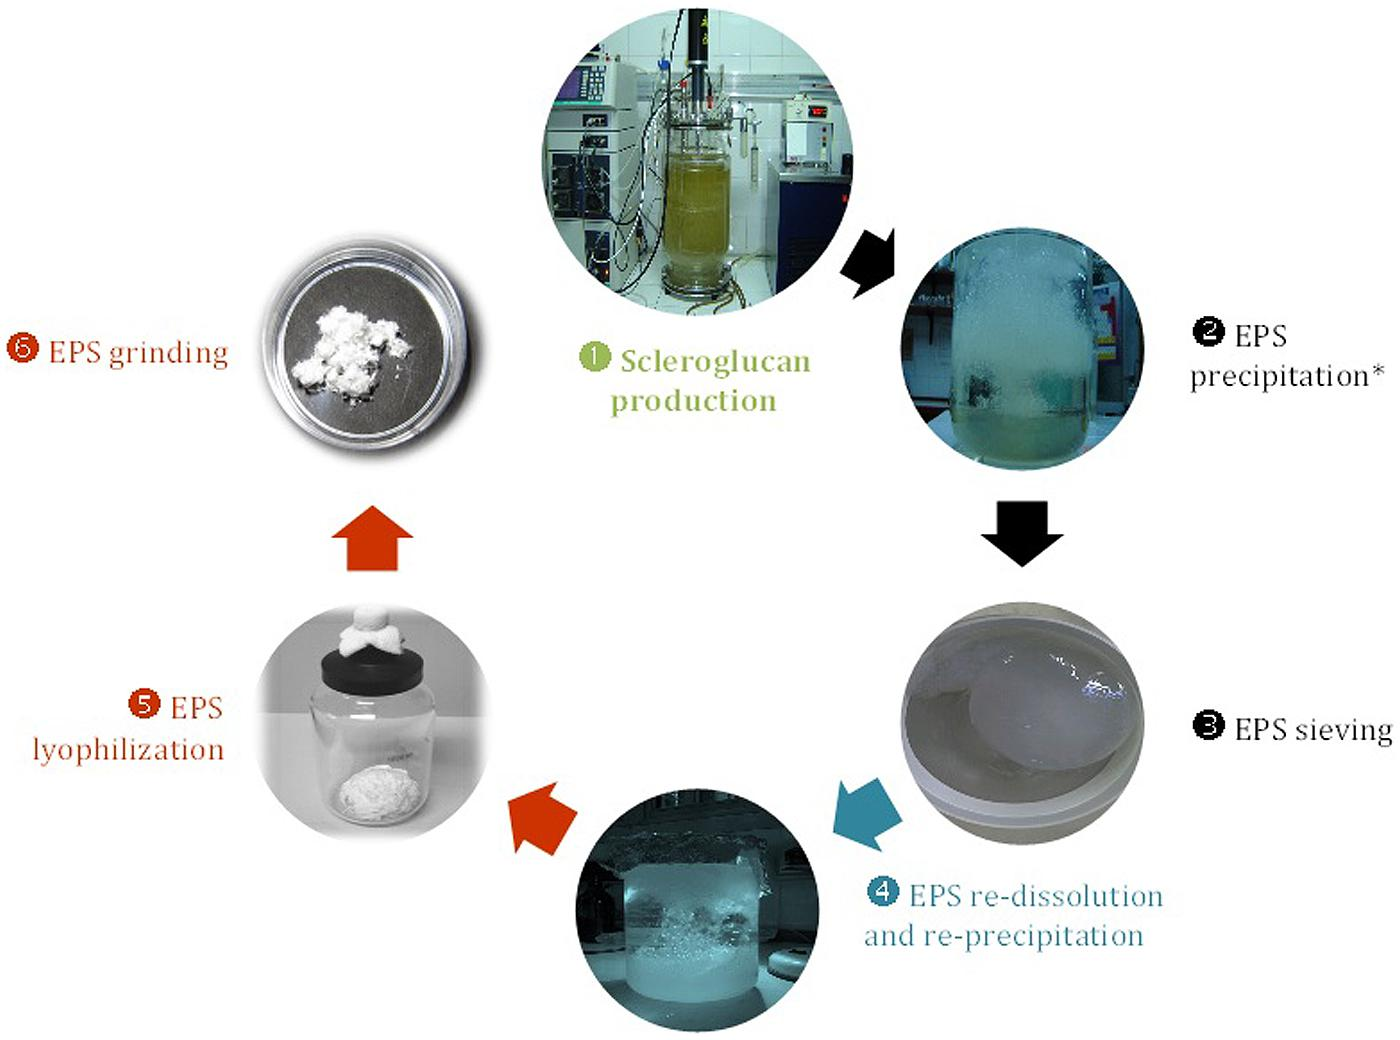 introduction of thesis exopolysaccharides Pdf | microbial polysaccharides are produced in two forms, capsular  table 5  2 common components of bacterial exopolysaccharides (kenne and   laurienzo p (2010) marine polysaccharides in pharmaceutical applications: an  overview  of sulfate-modified levan polysaccharides and their bioactivity  thesis.